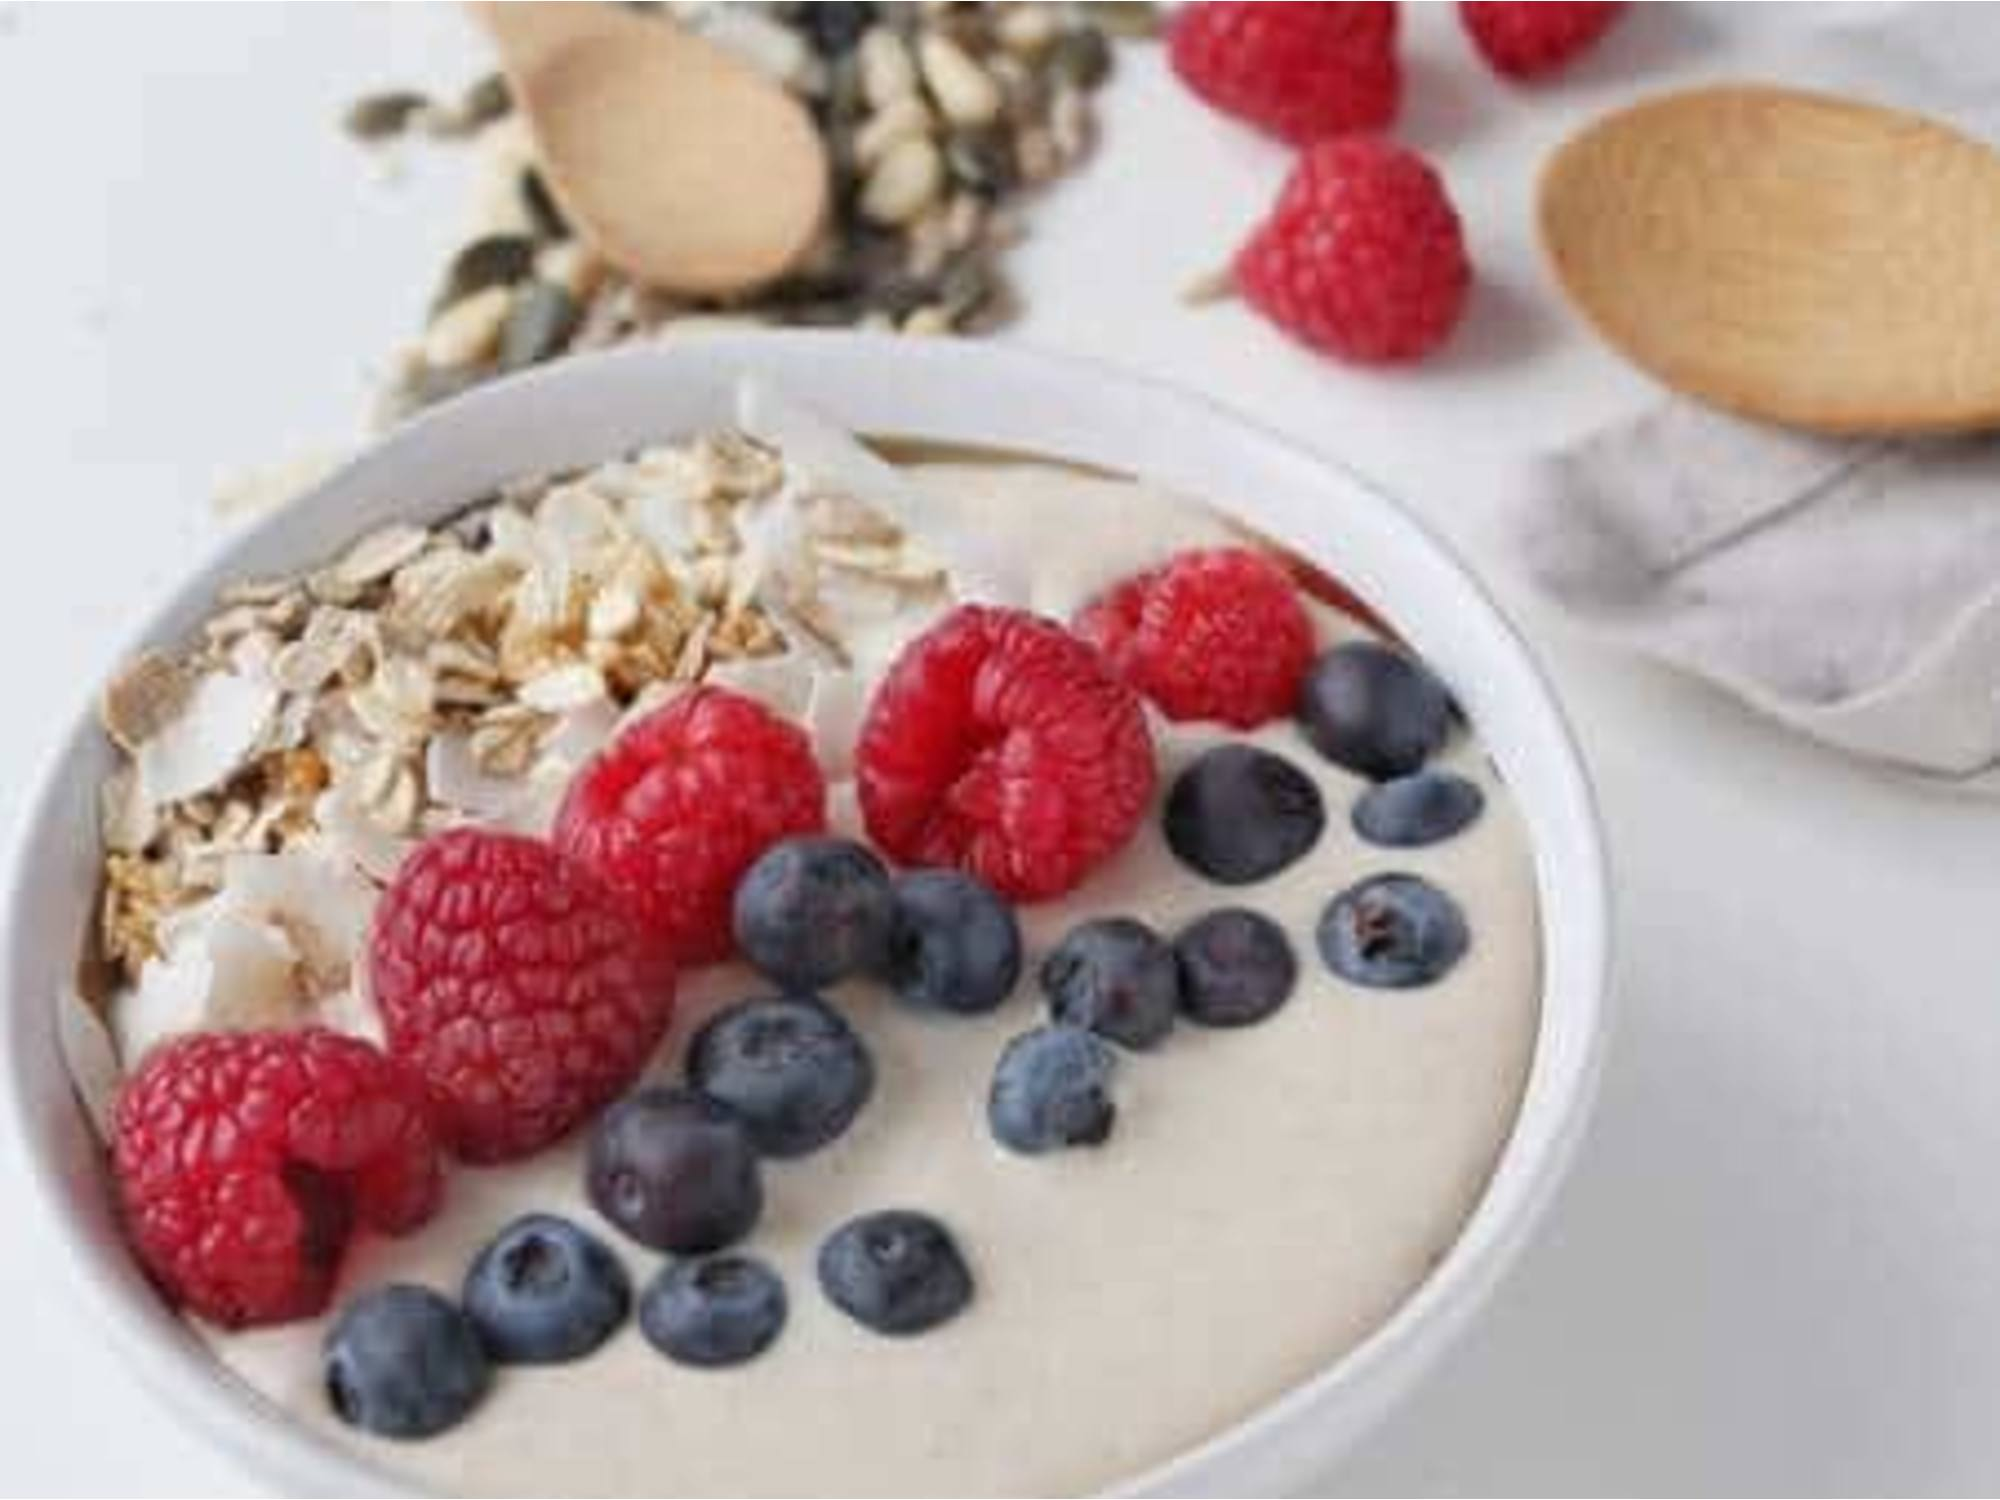 MARMITE & PEANUT BUTTER SMOOTHIE BOWL